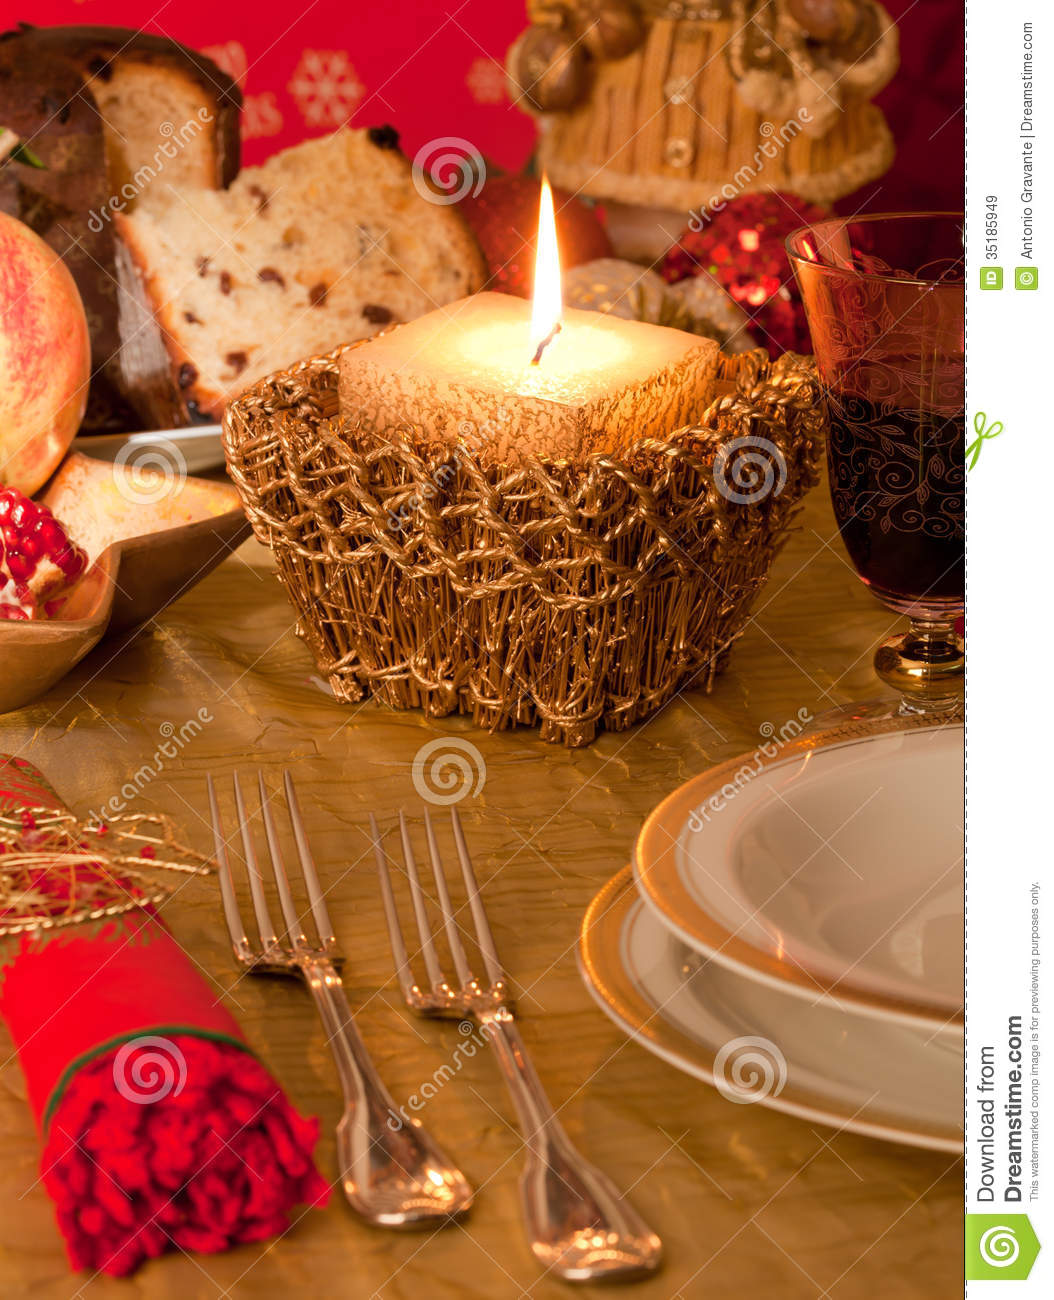 Table With Decorations For Christmas Dinner Stock Image